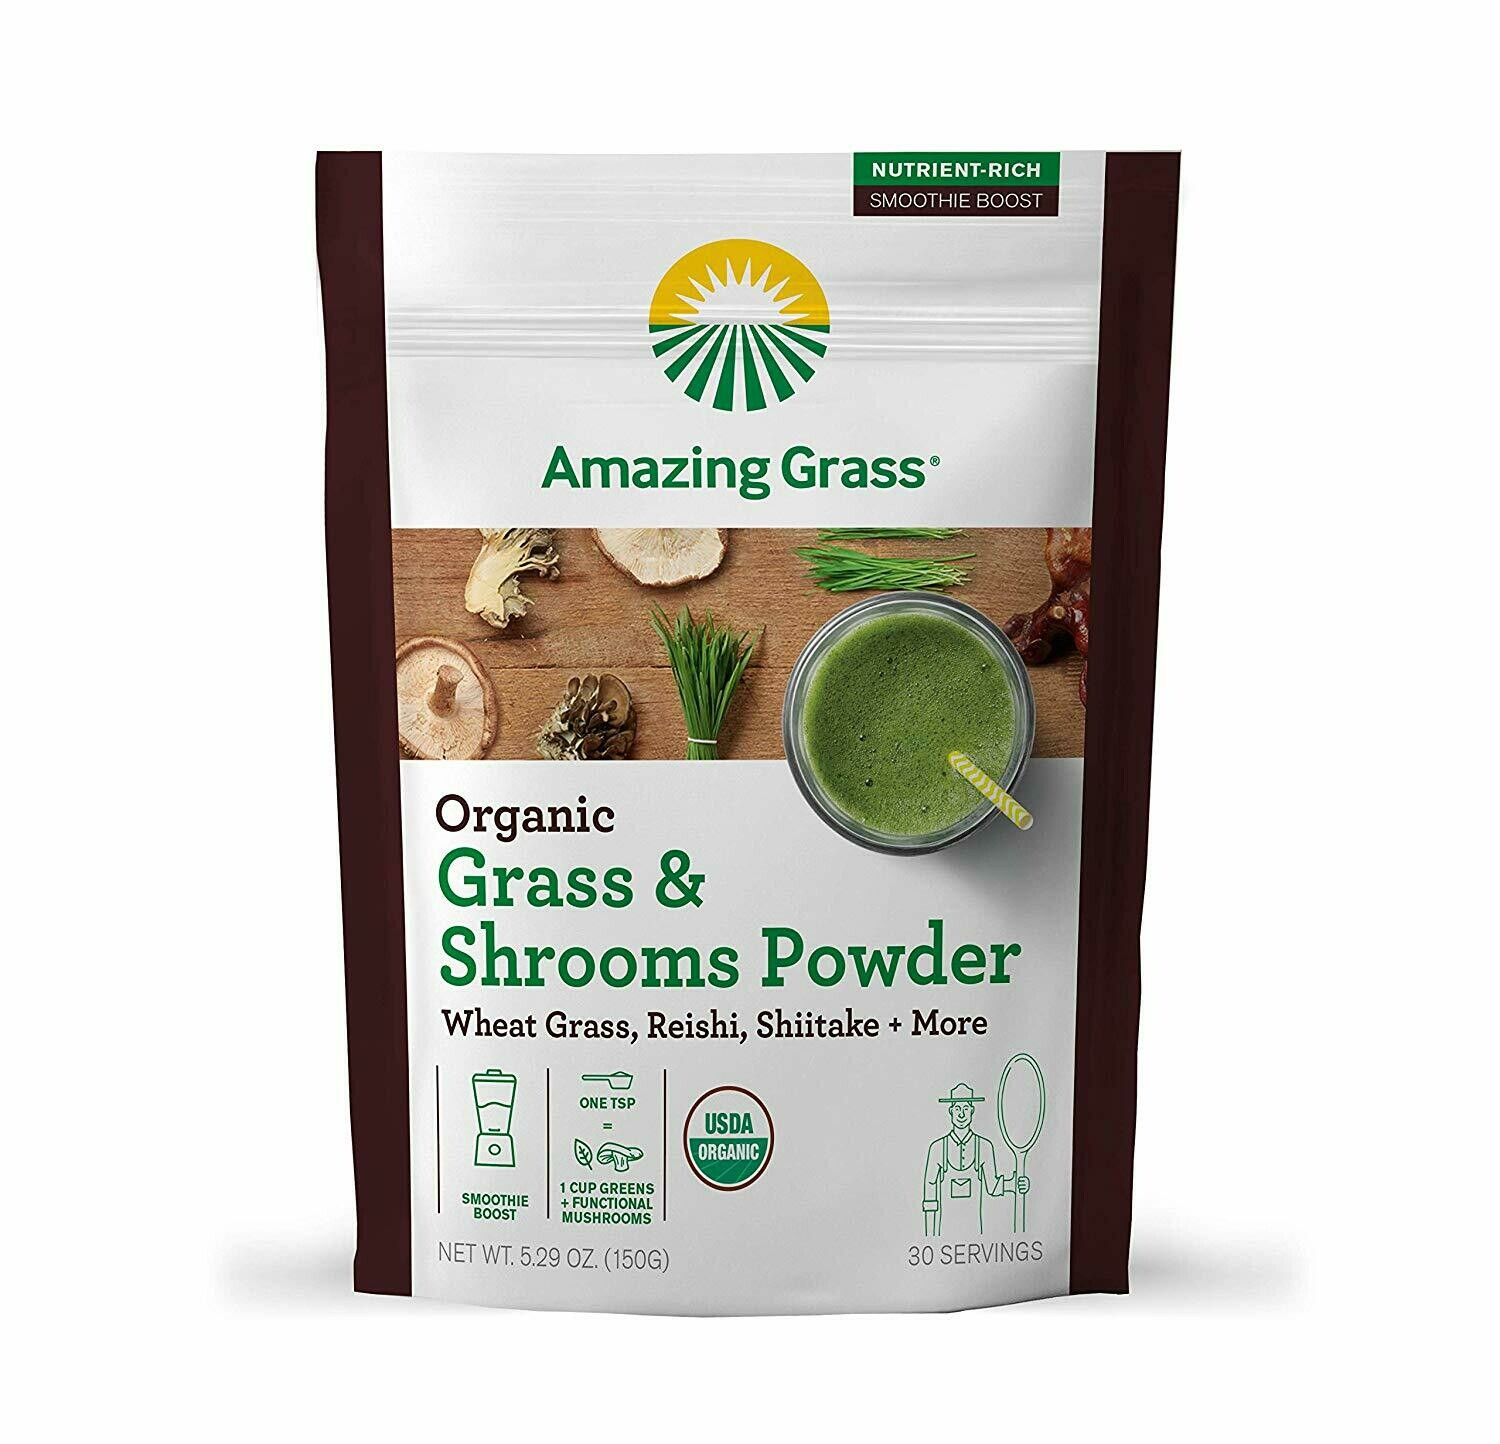 Organic Greens & Shrooms Powder by Amazing Grass, with Wheatgrass, Reishi, Shittake, & More Mushrooms, Smoothie Booster, 30 servings